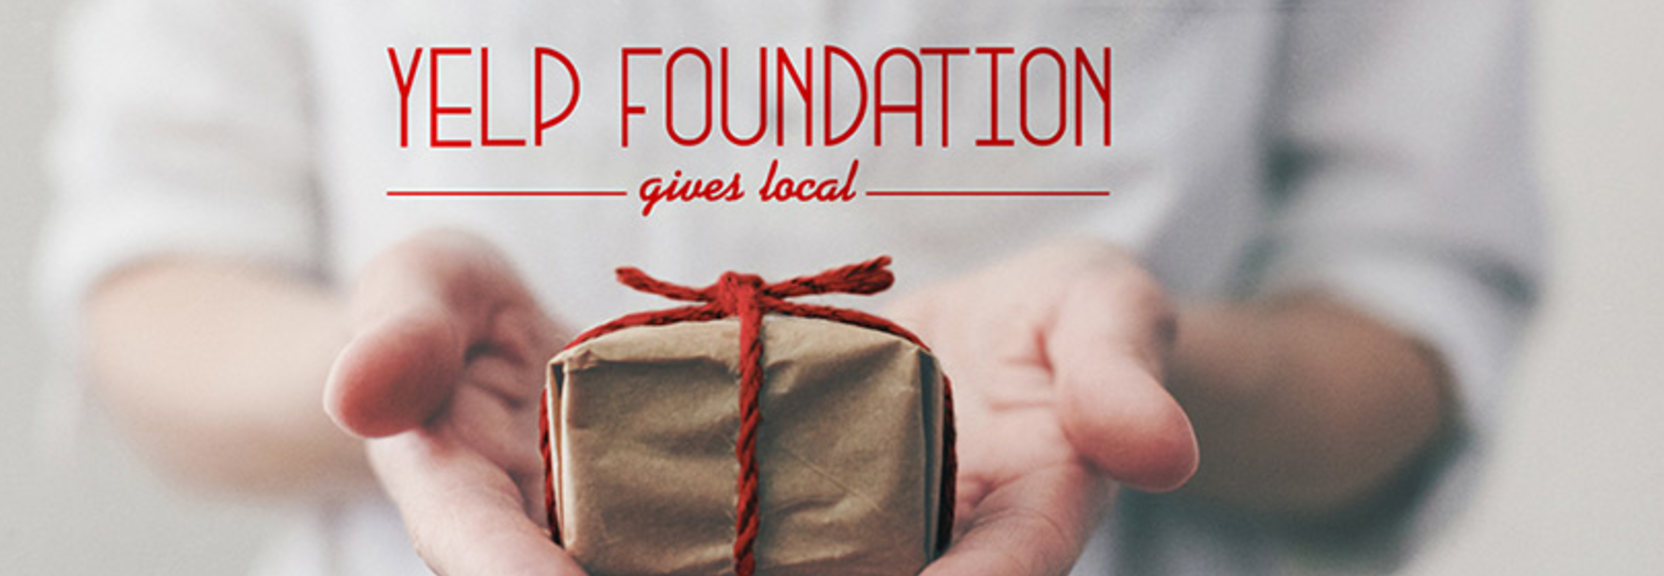 yelp foundation gives local logo